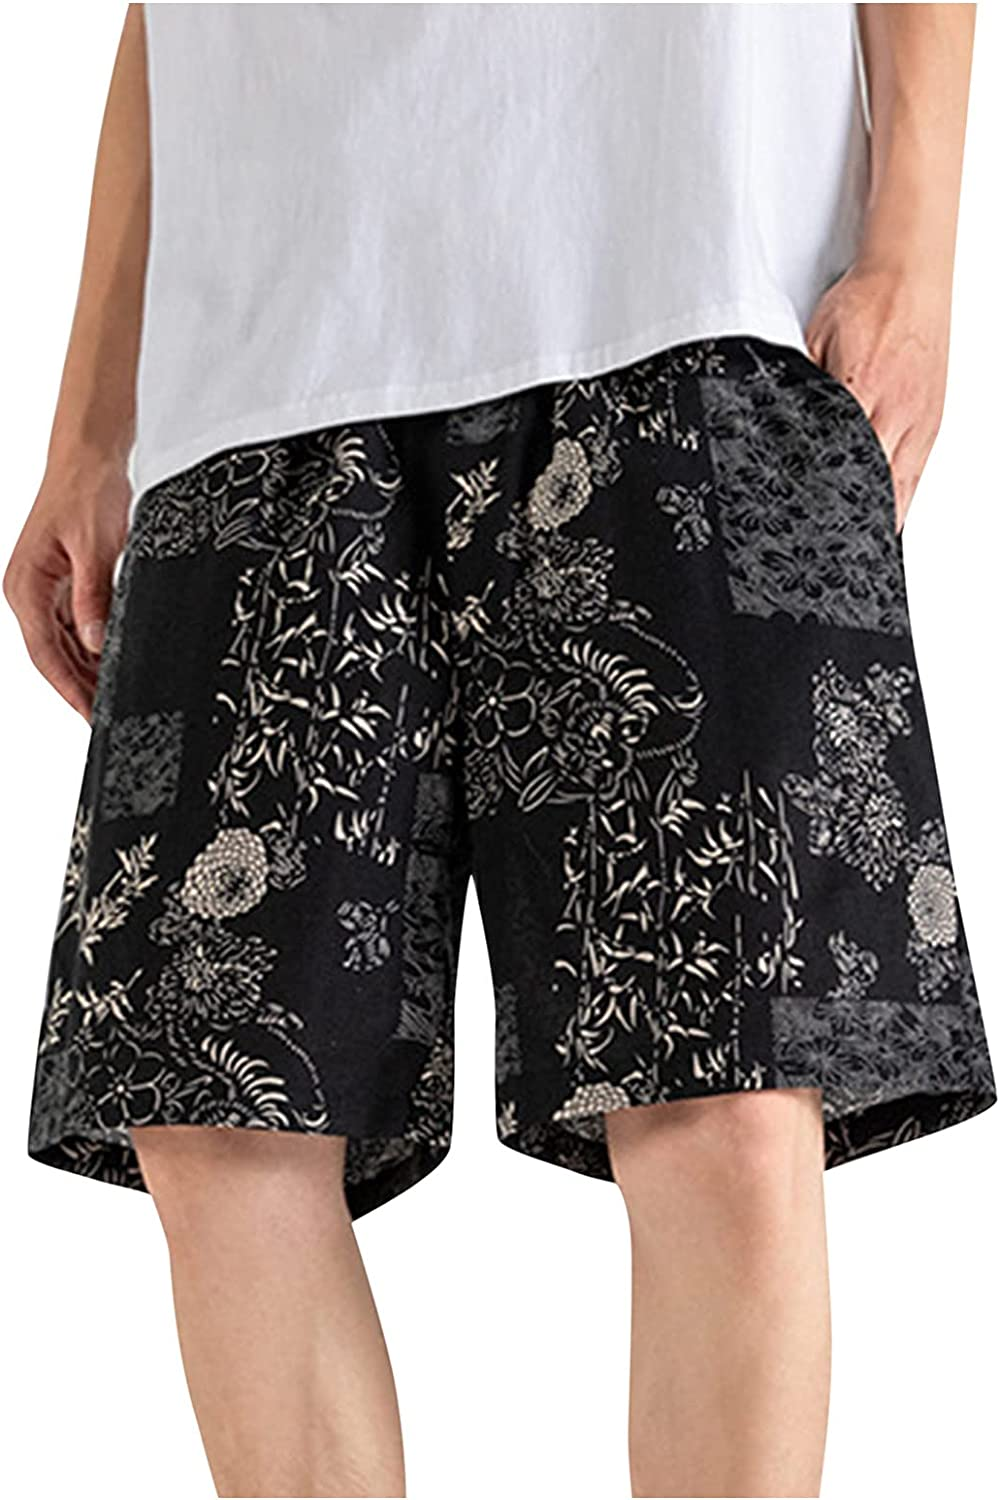 PHSHY Floral Printed Shorts for Men Summer Elastic Waist Swim Trunks Casual Hawaii Quick Dry Beach Hippe Loose Shorts